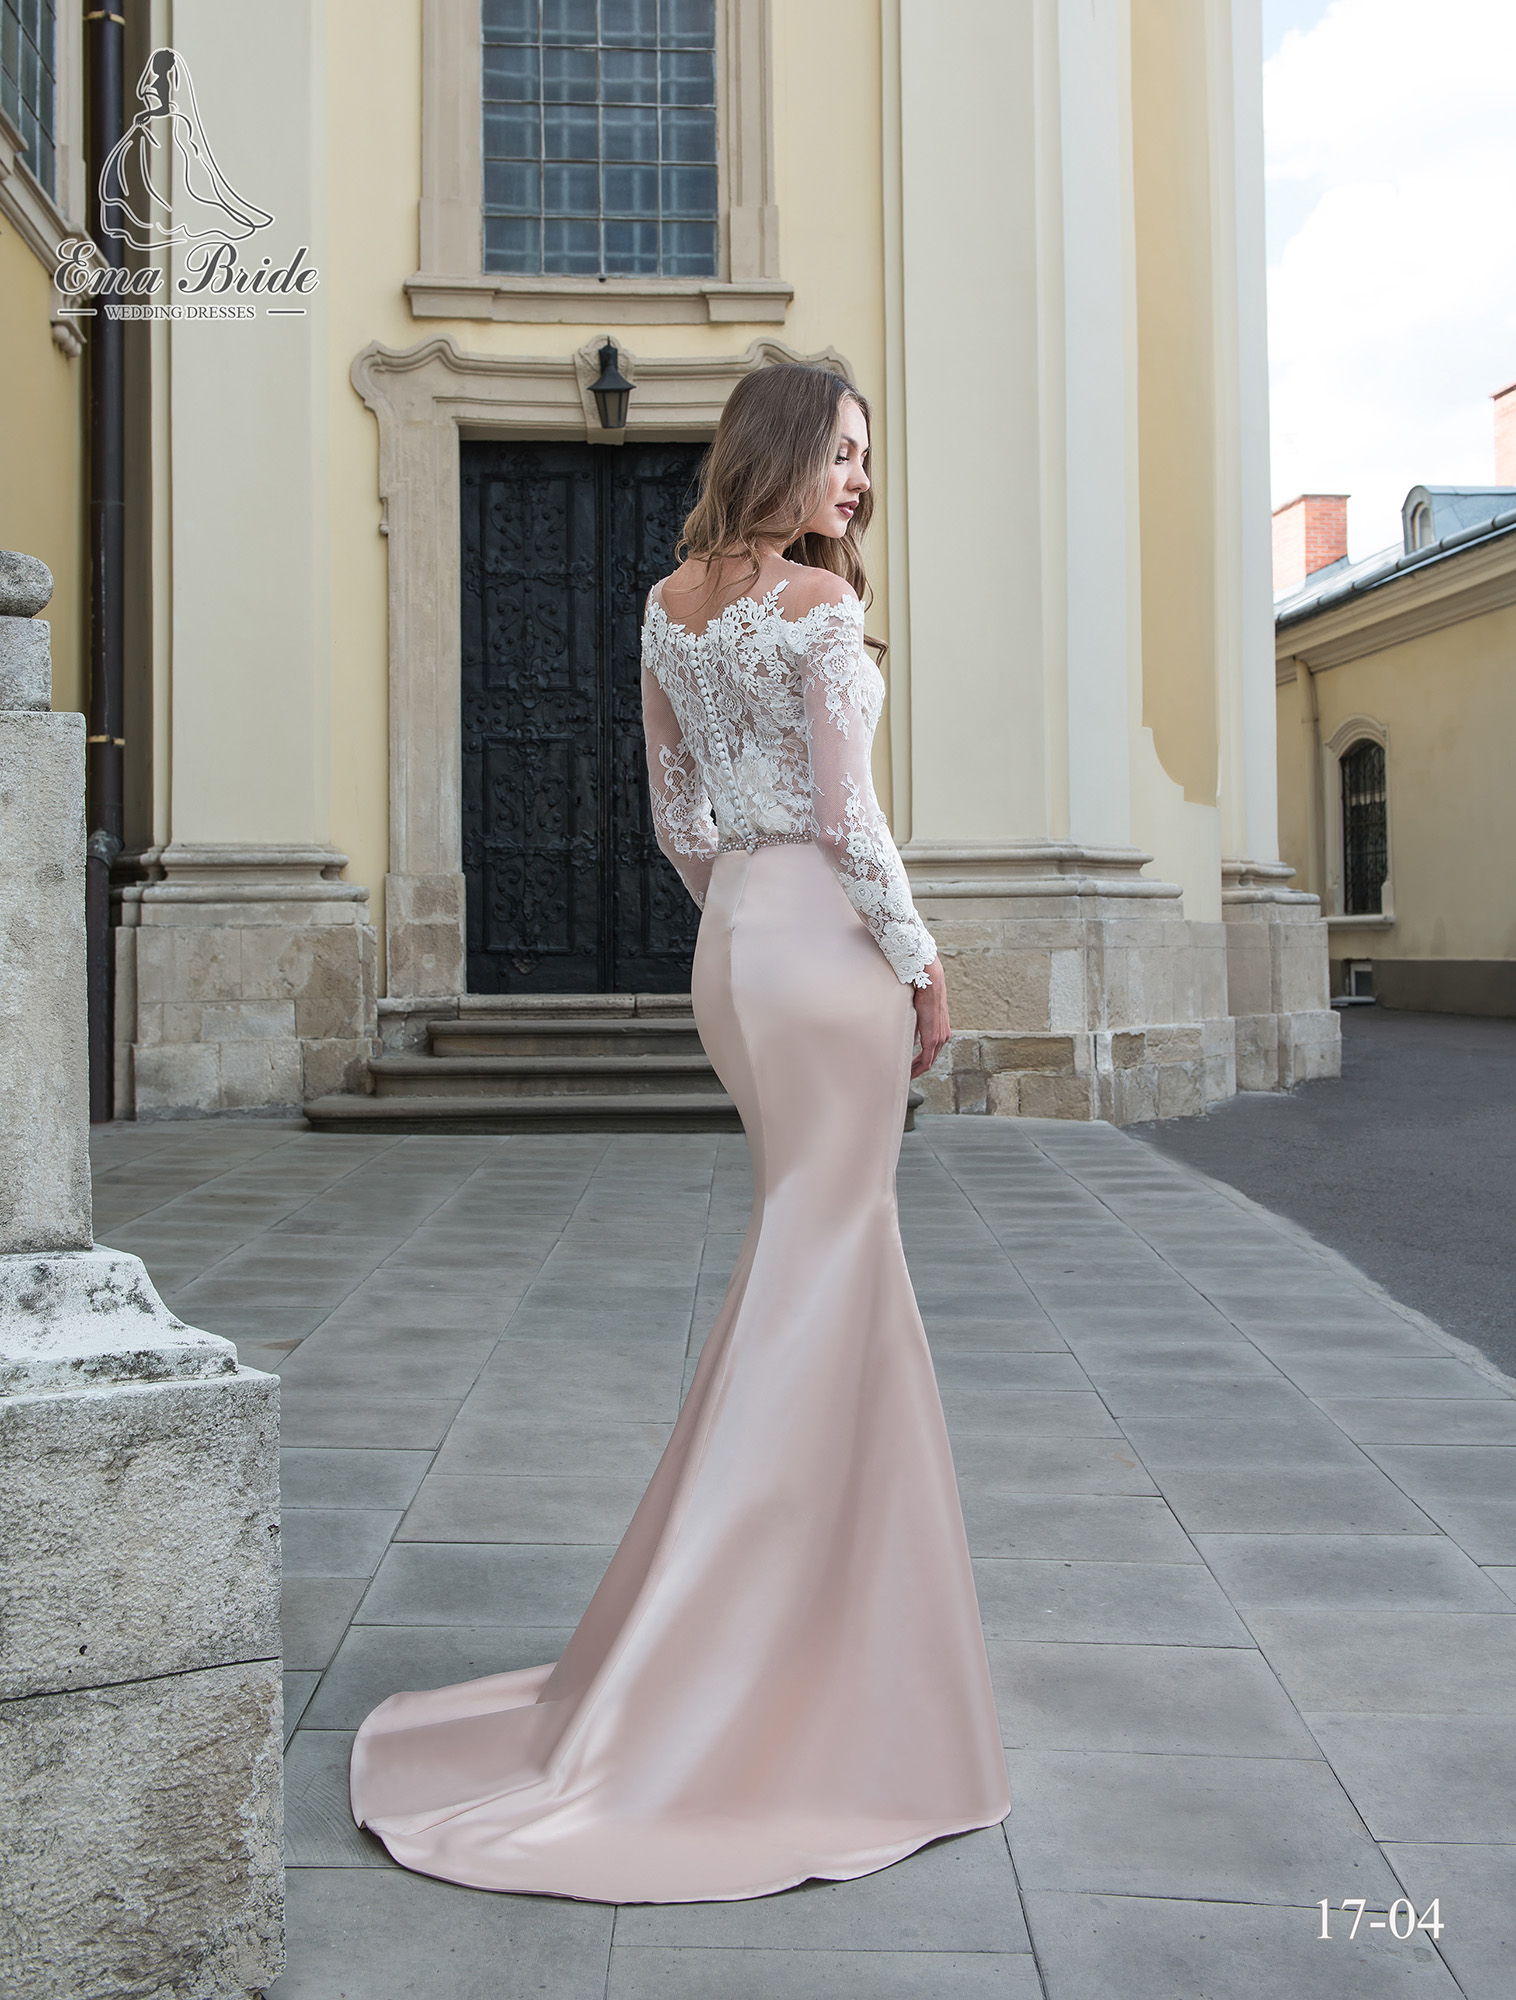 Satin wedding dress pink quartz color-2